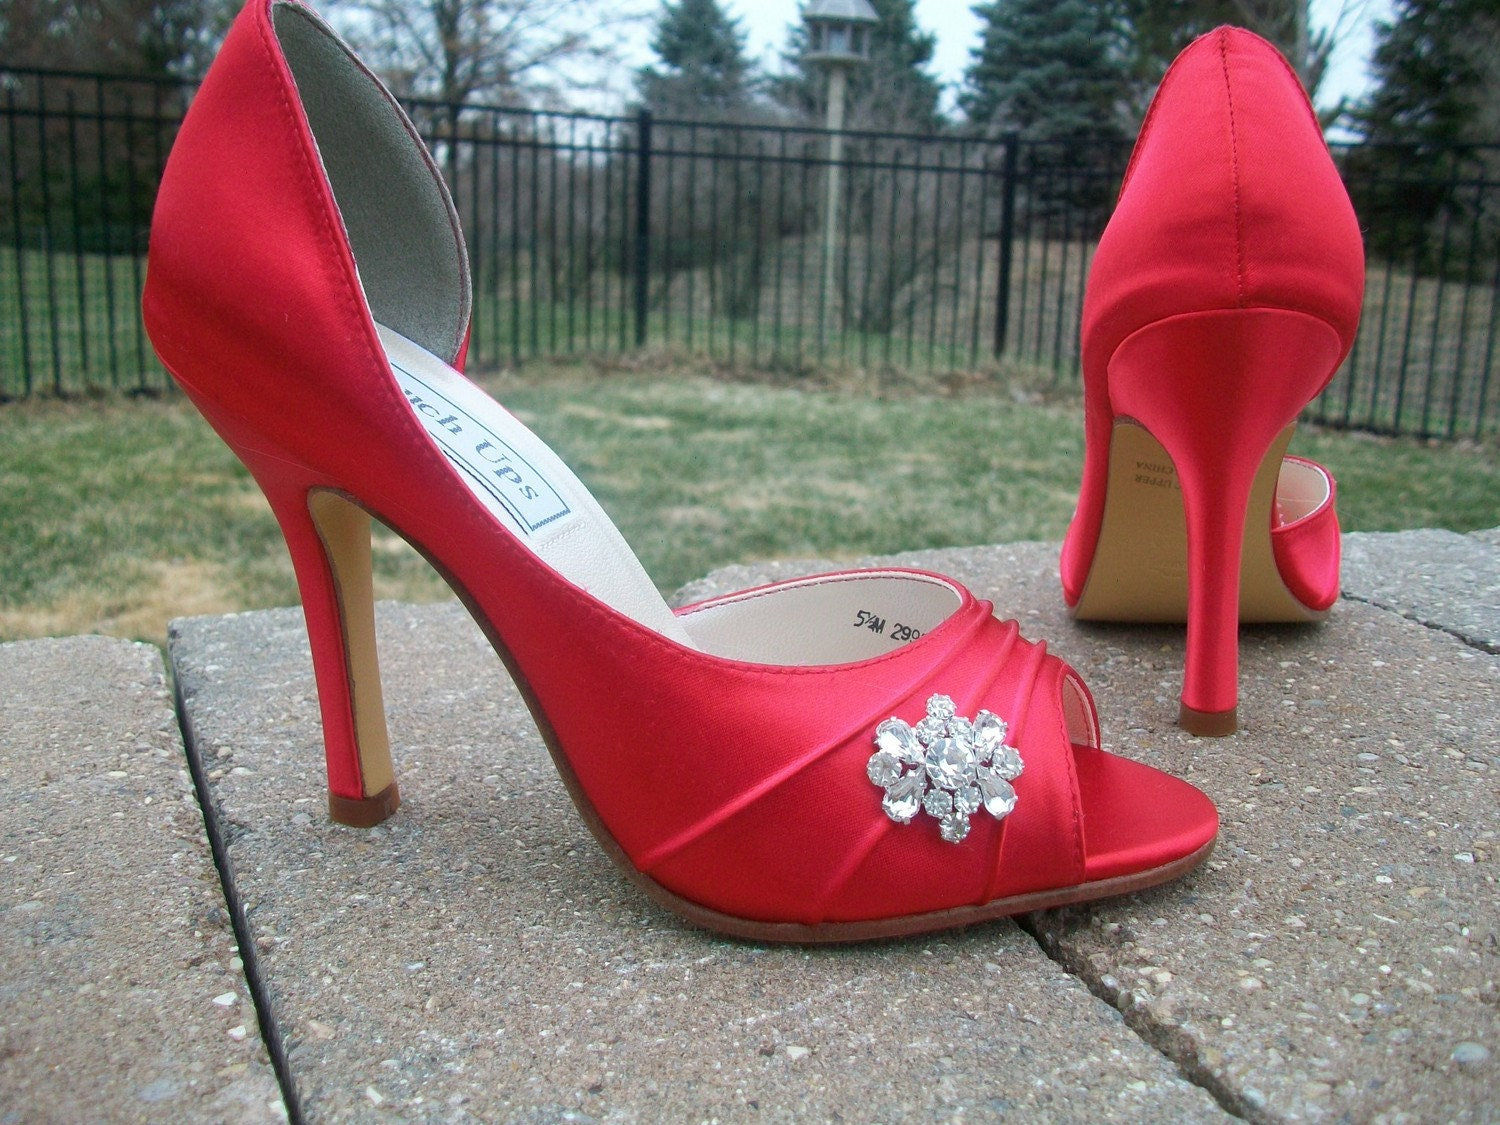 Flirty Red 3.5 Heel Satin Shoes With Rhinestones...Over 100 Colors To Choose From